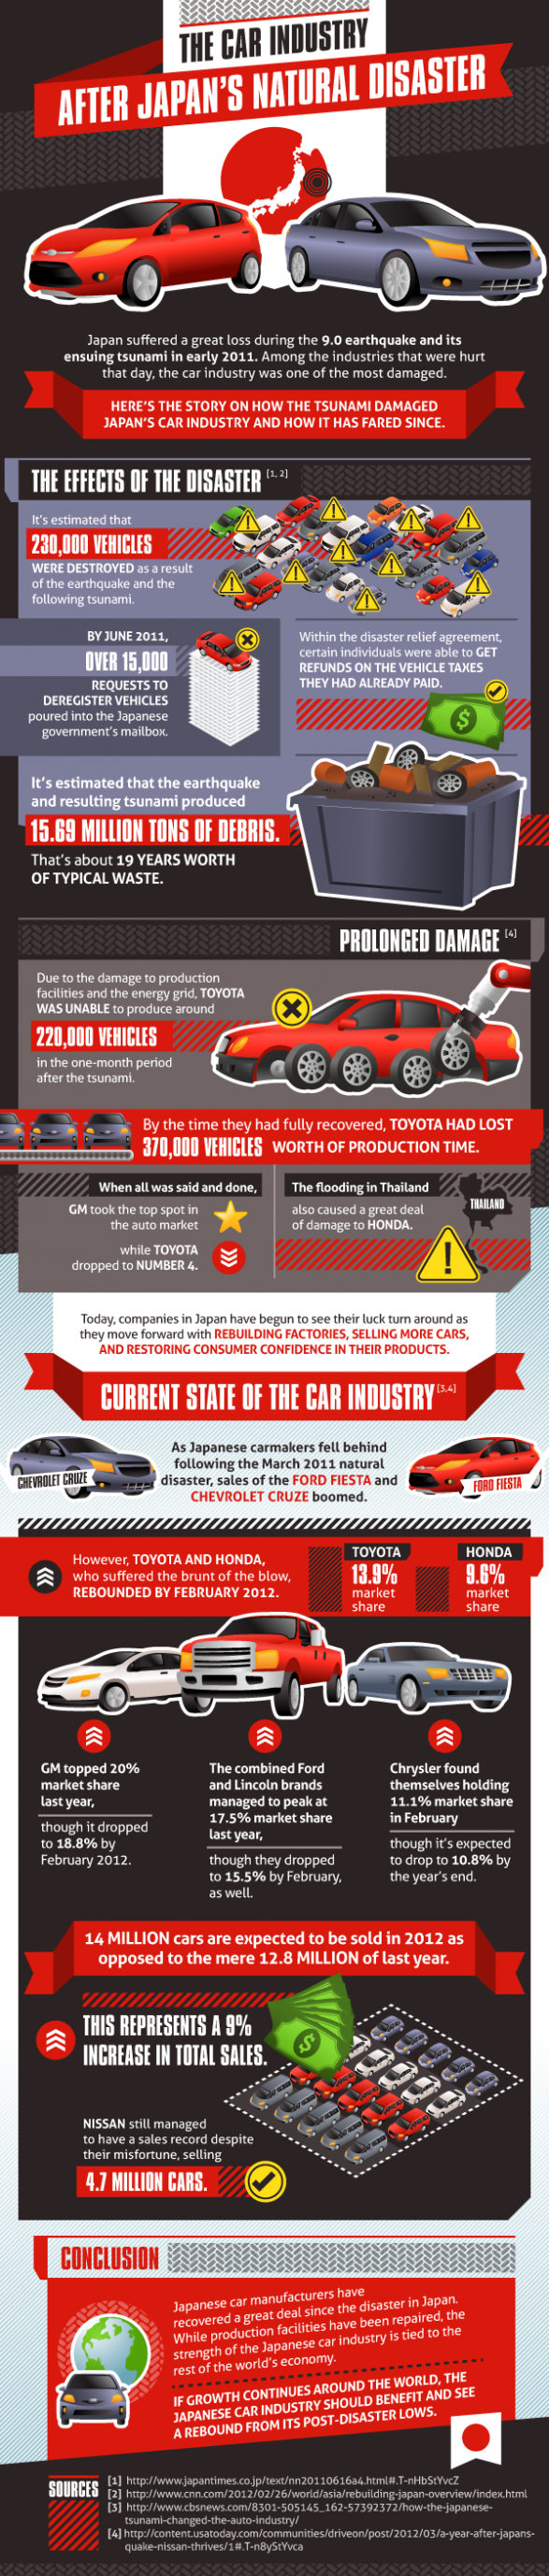 The Car Industry After Japan�s Natural Disaster